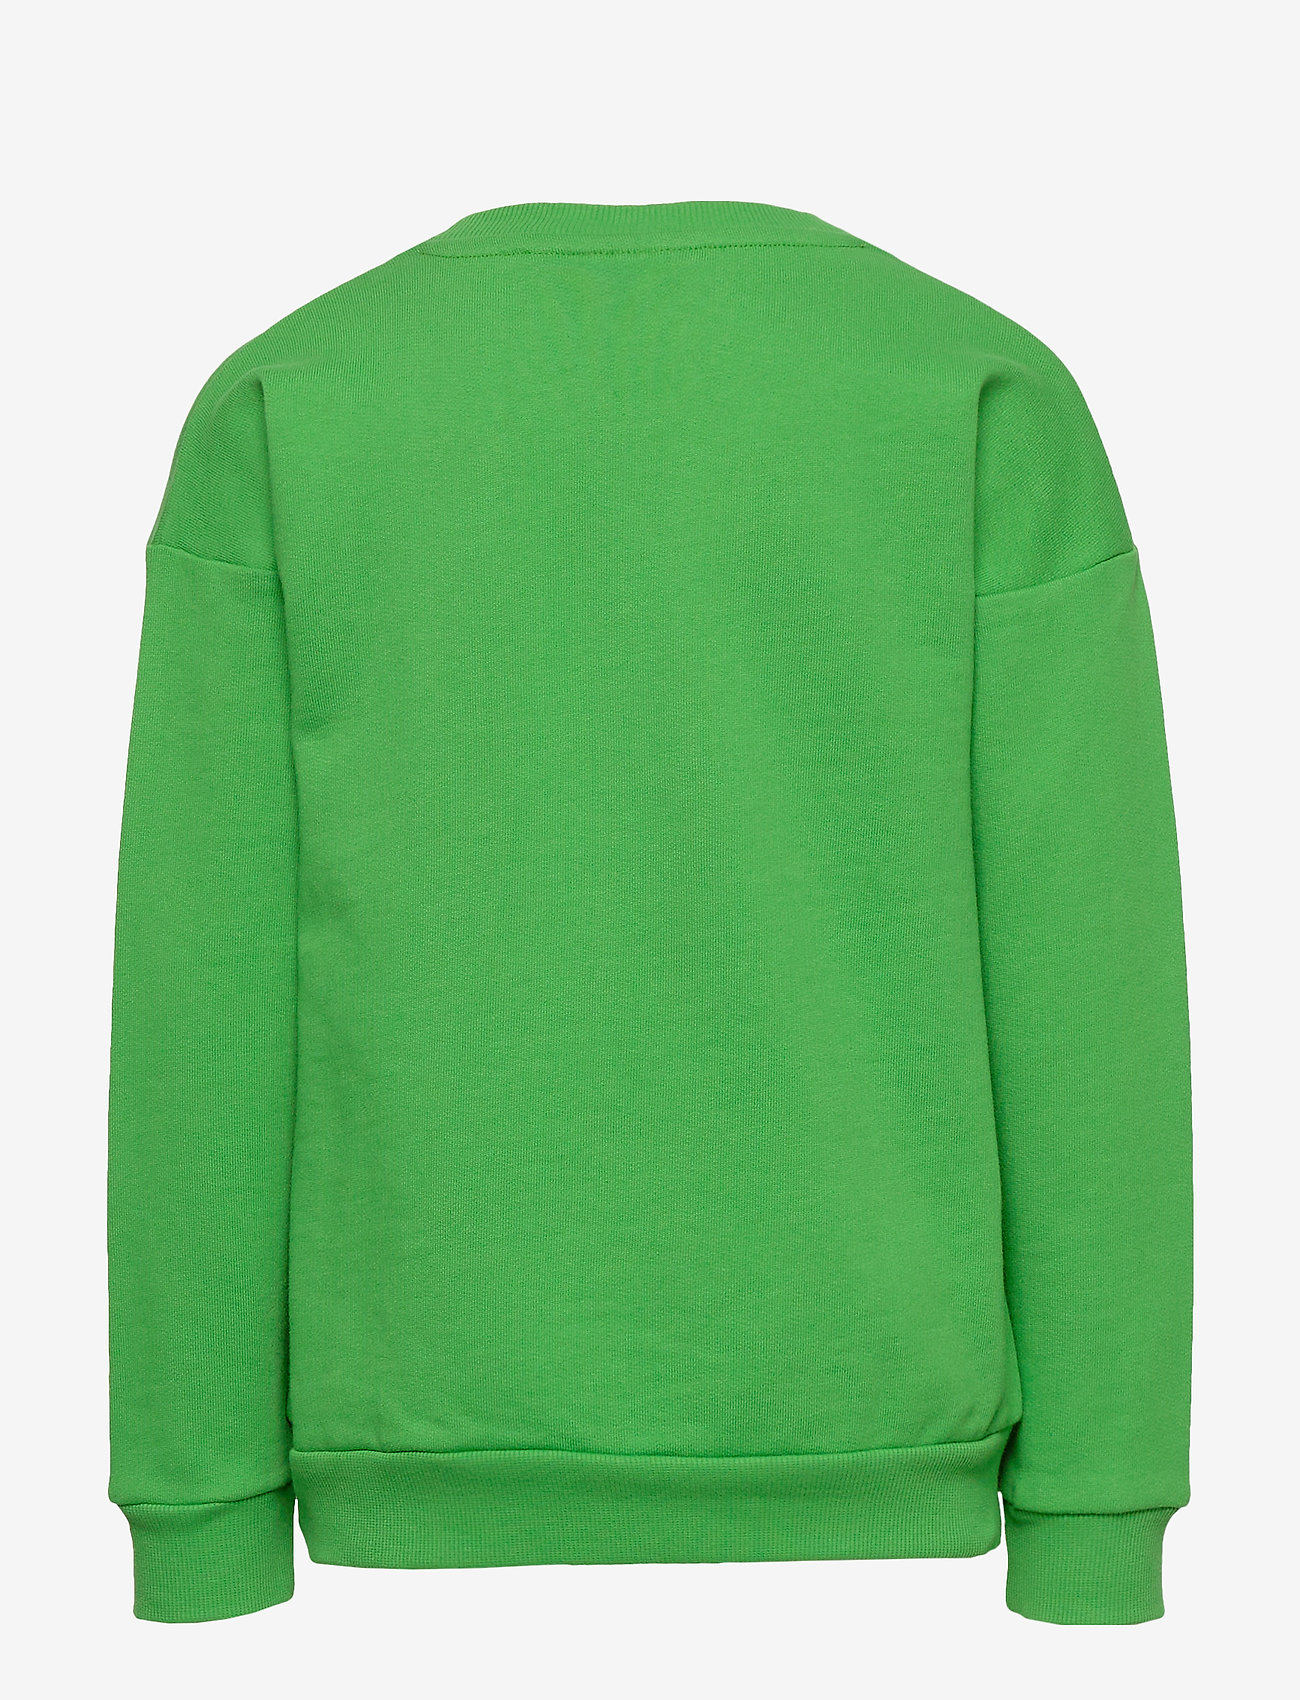 Mini Rodini - Game sp sweatshirt - sweatshirts - green - 1